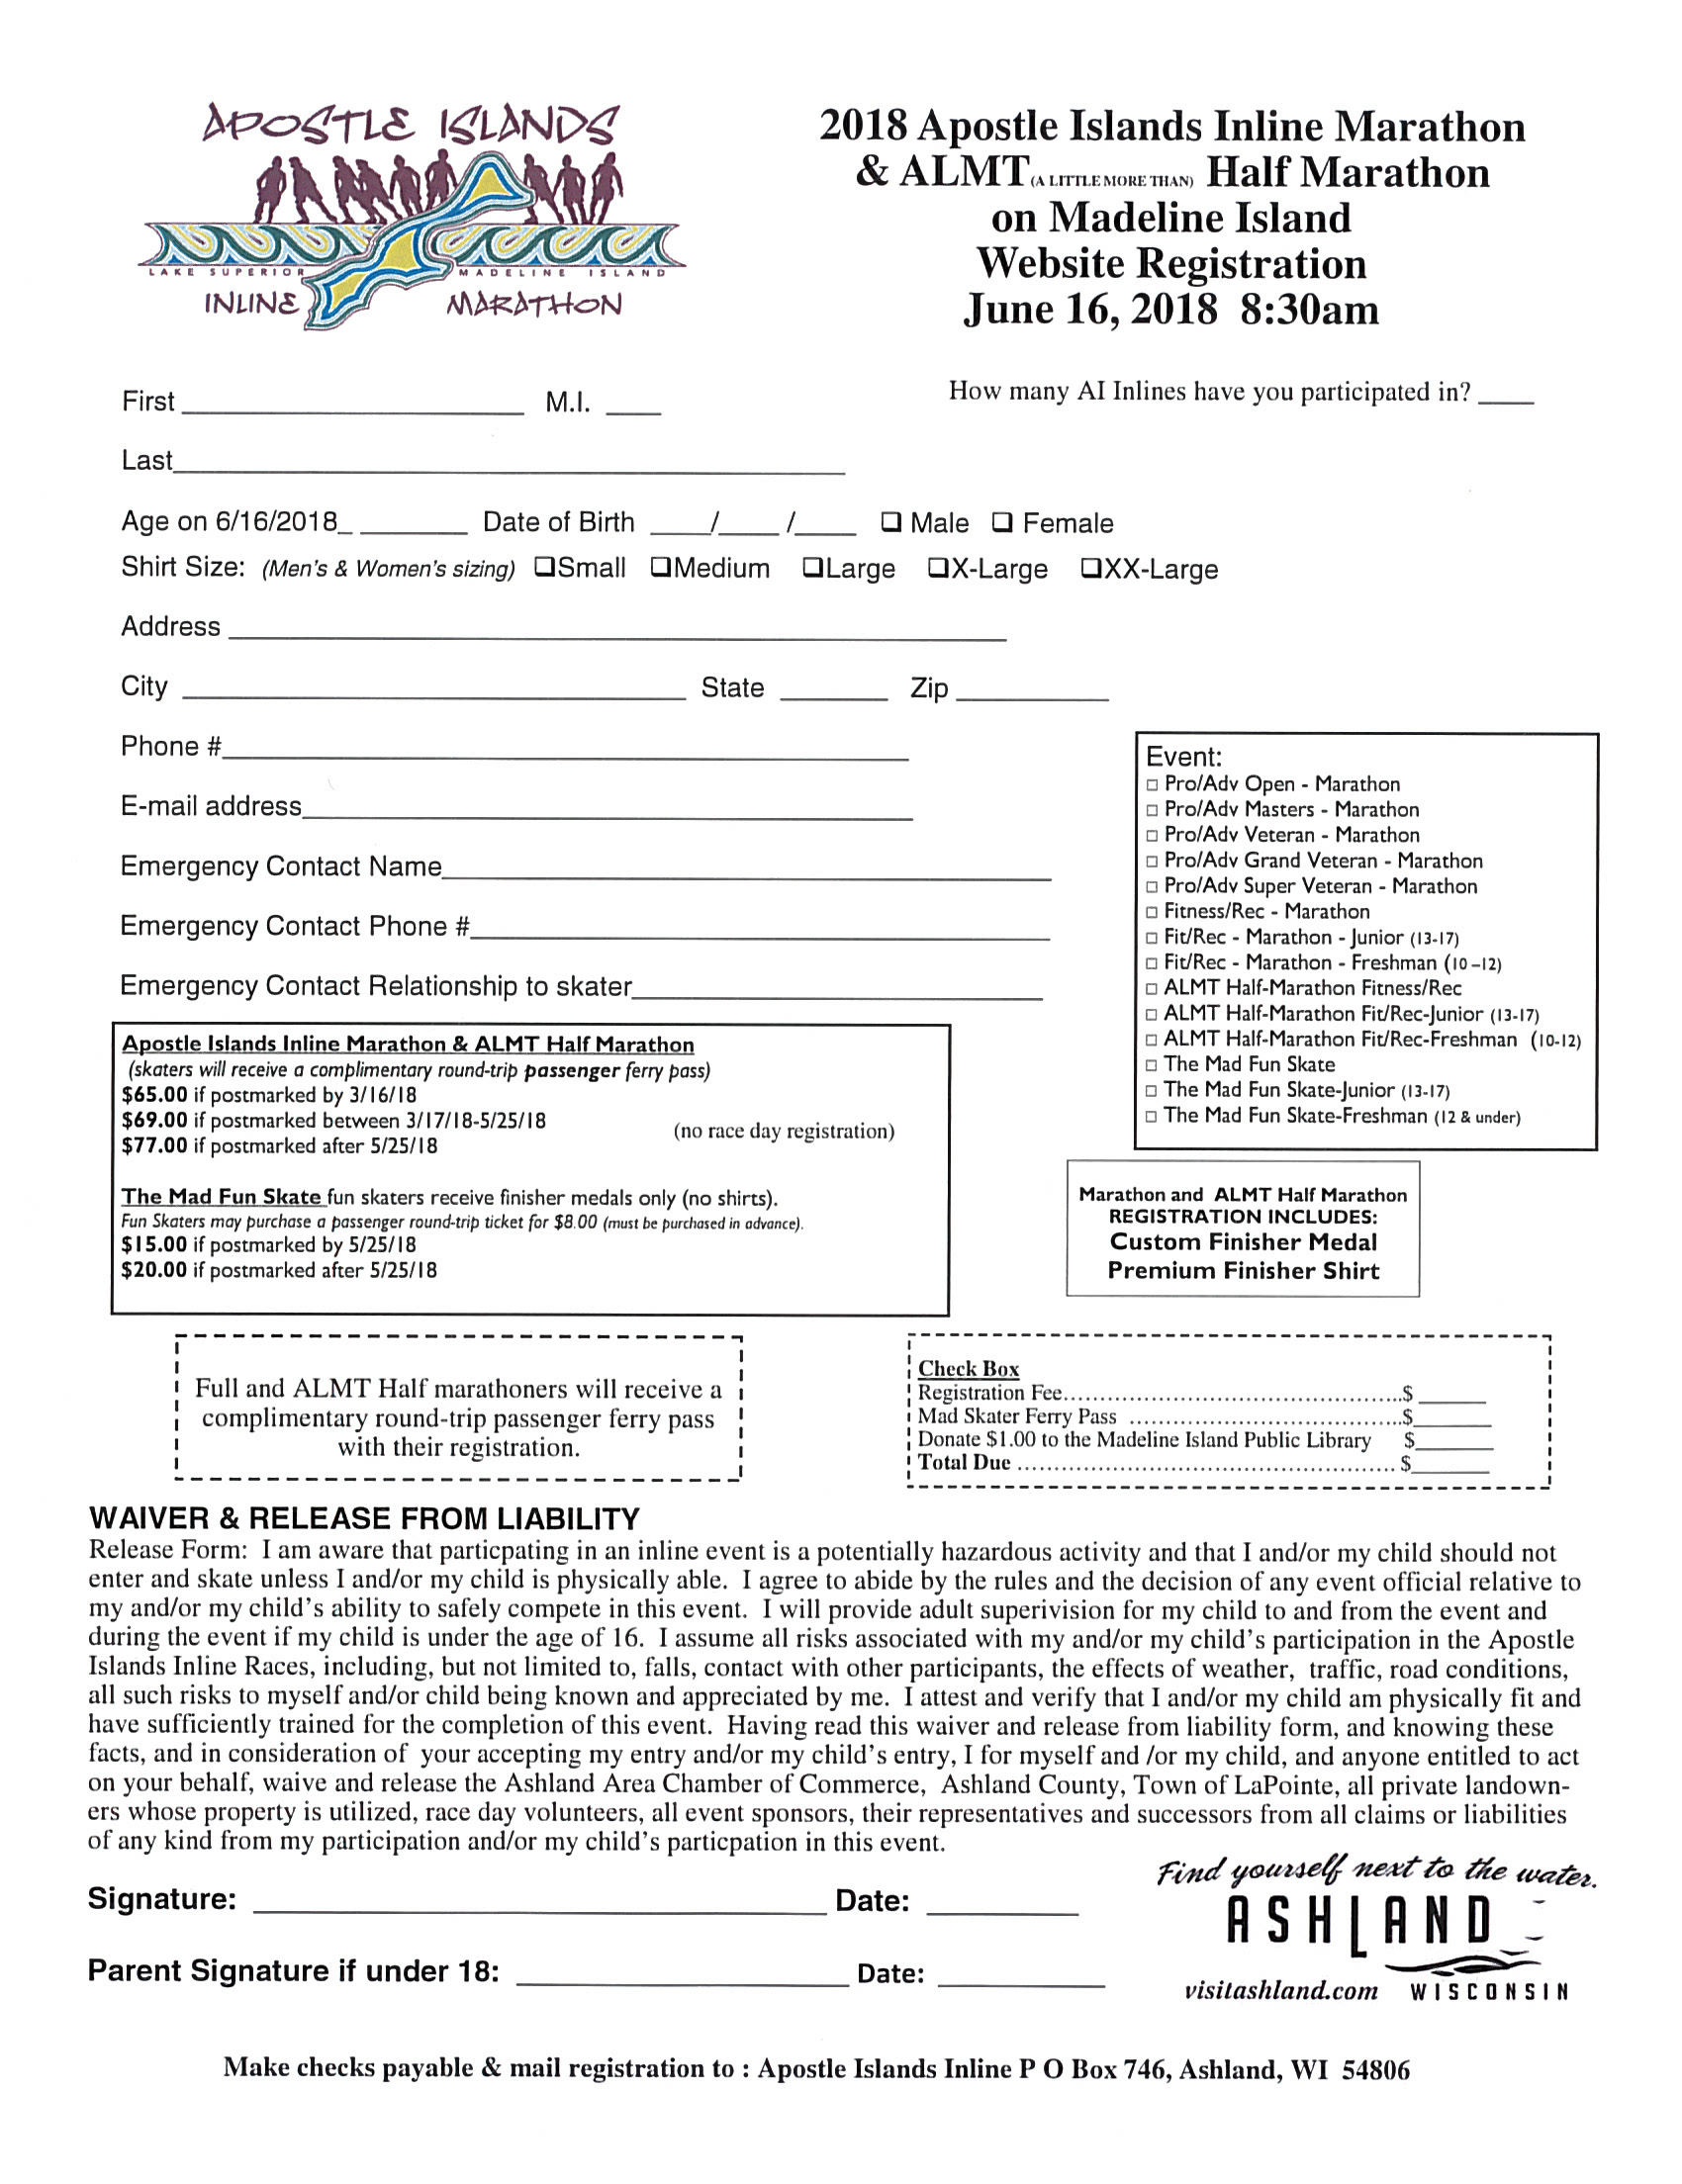 Online Registration Or Download Form Madeline Island Wisconsin Click The Image For A Pdf Version